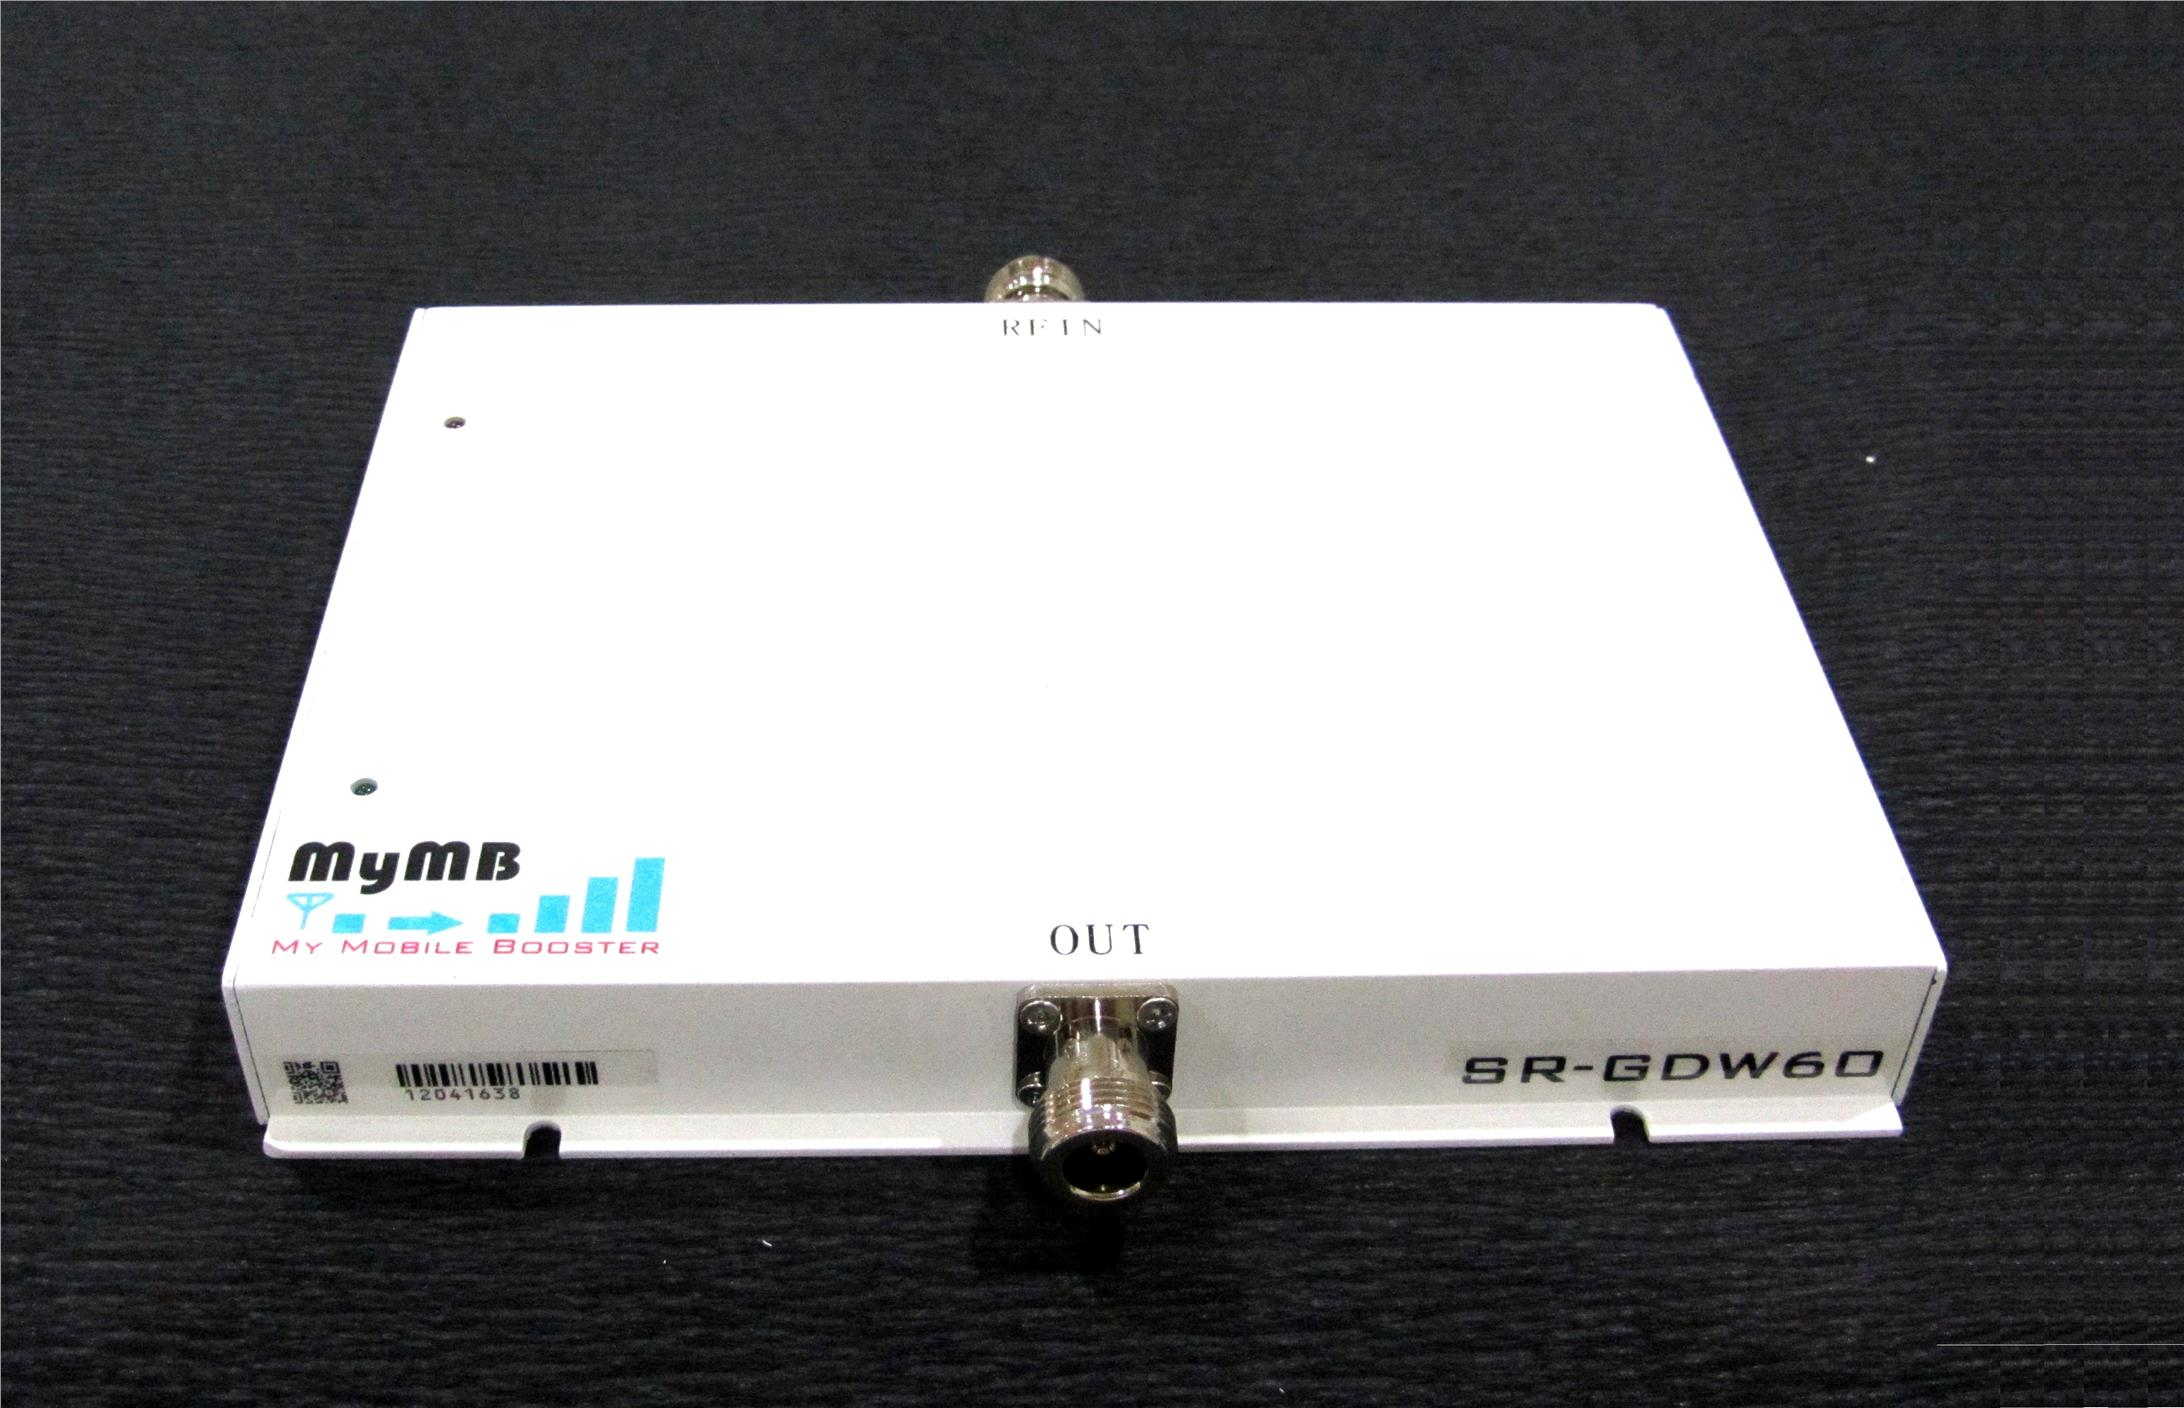 Tri Band Mobile Signal Booster for GSM-900/1800 + 3G (SR-GDW60)